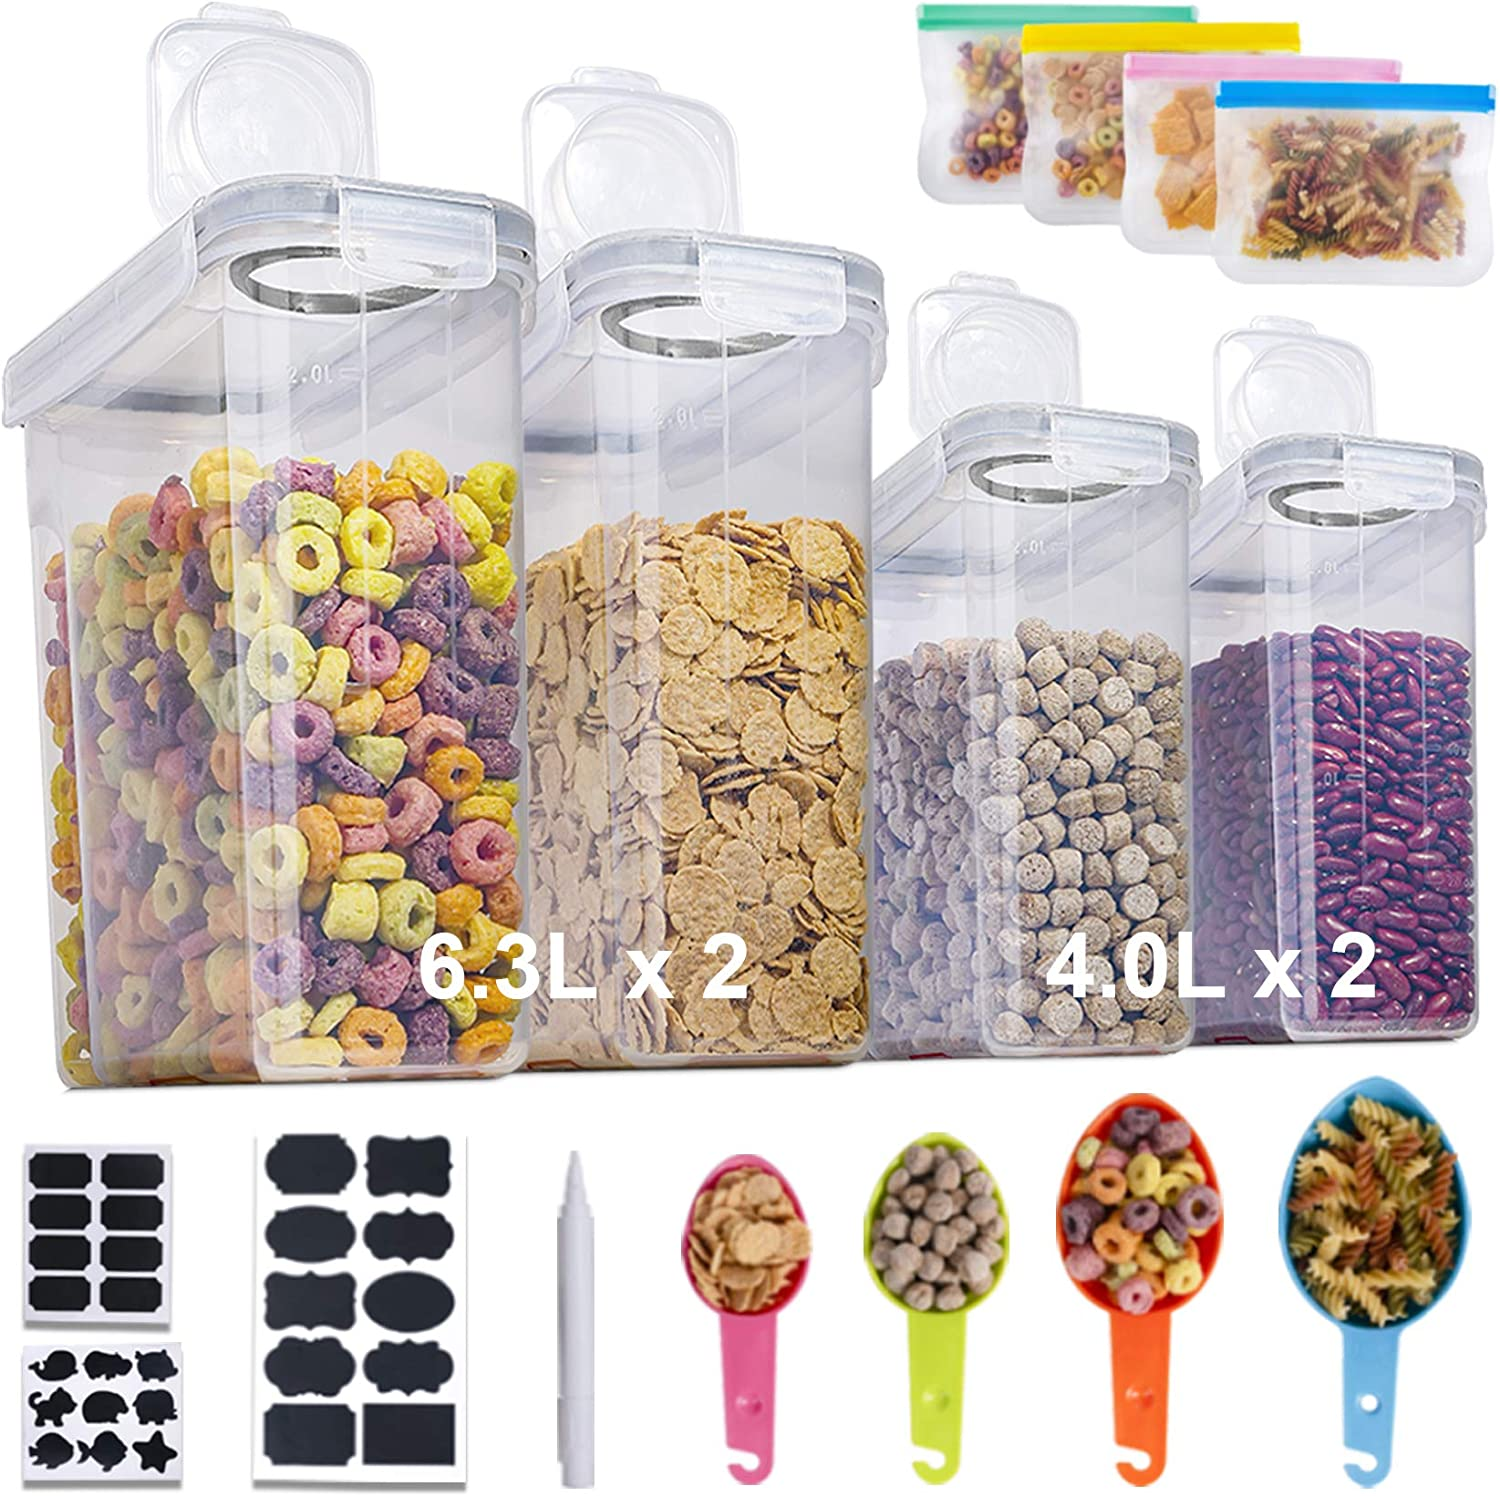 Extra Large Cereal Storage Container, 4 Pack Airtight Food Storage Containers for Pantry BPA Free Plastic Chips Container Extra Large Kitchen Storage Container for Flour Snacks Nuts Baking Supplies